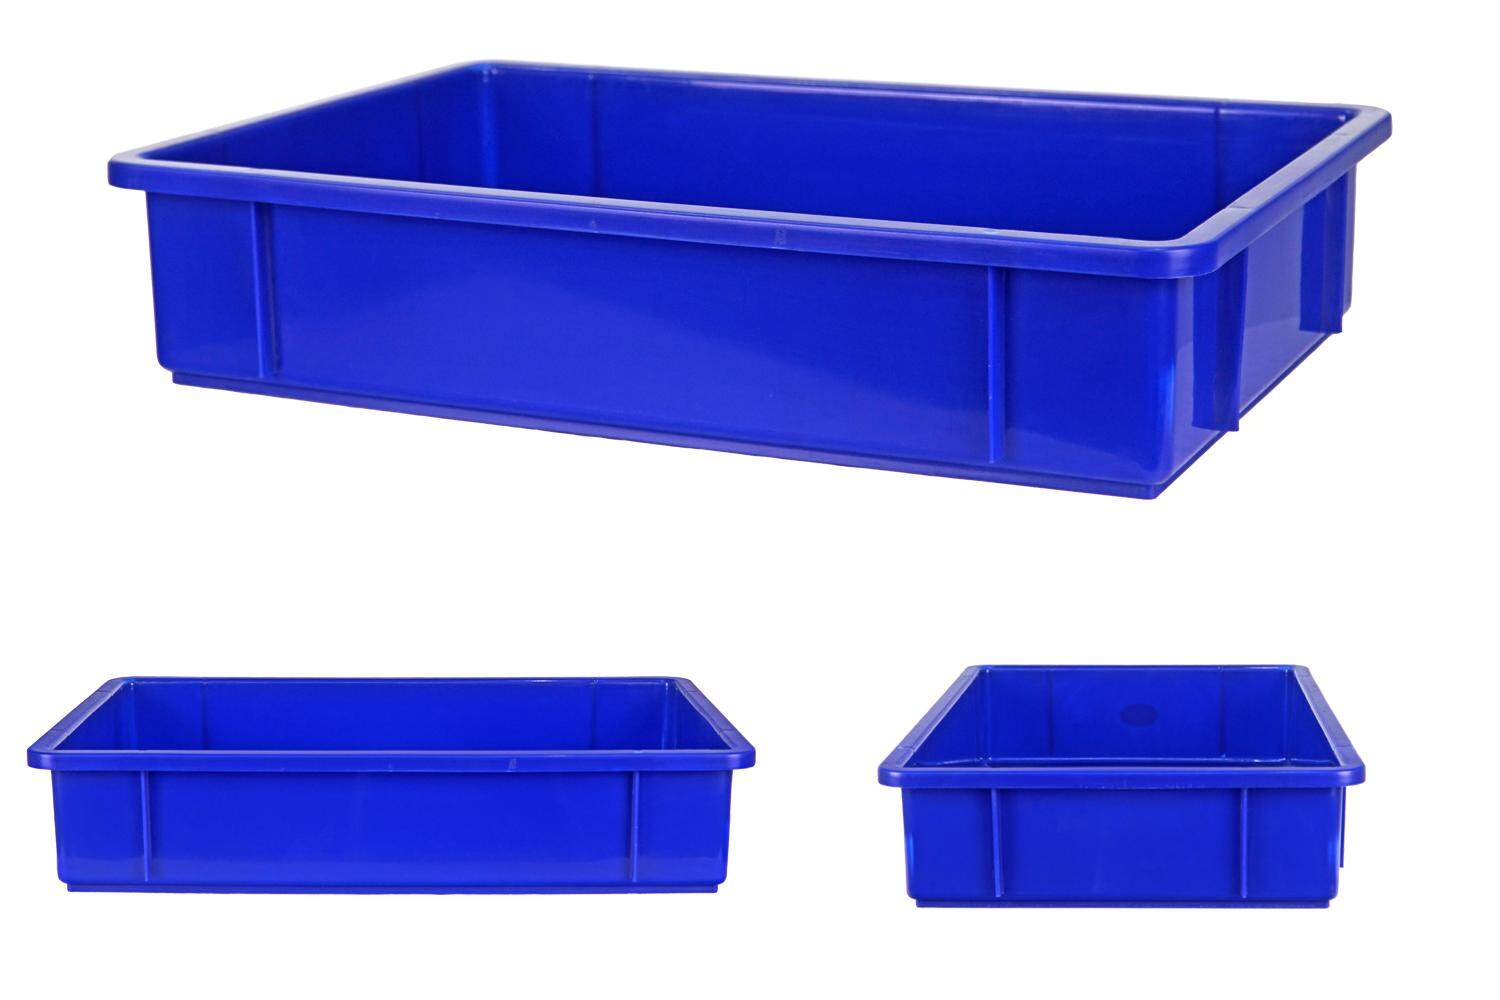 (LZ) Toyogo T46 series 23 Industrial Tray Container